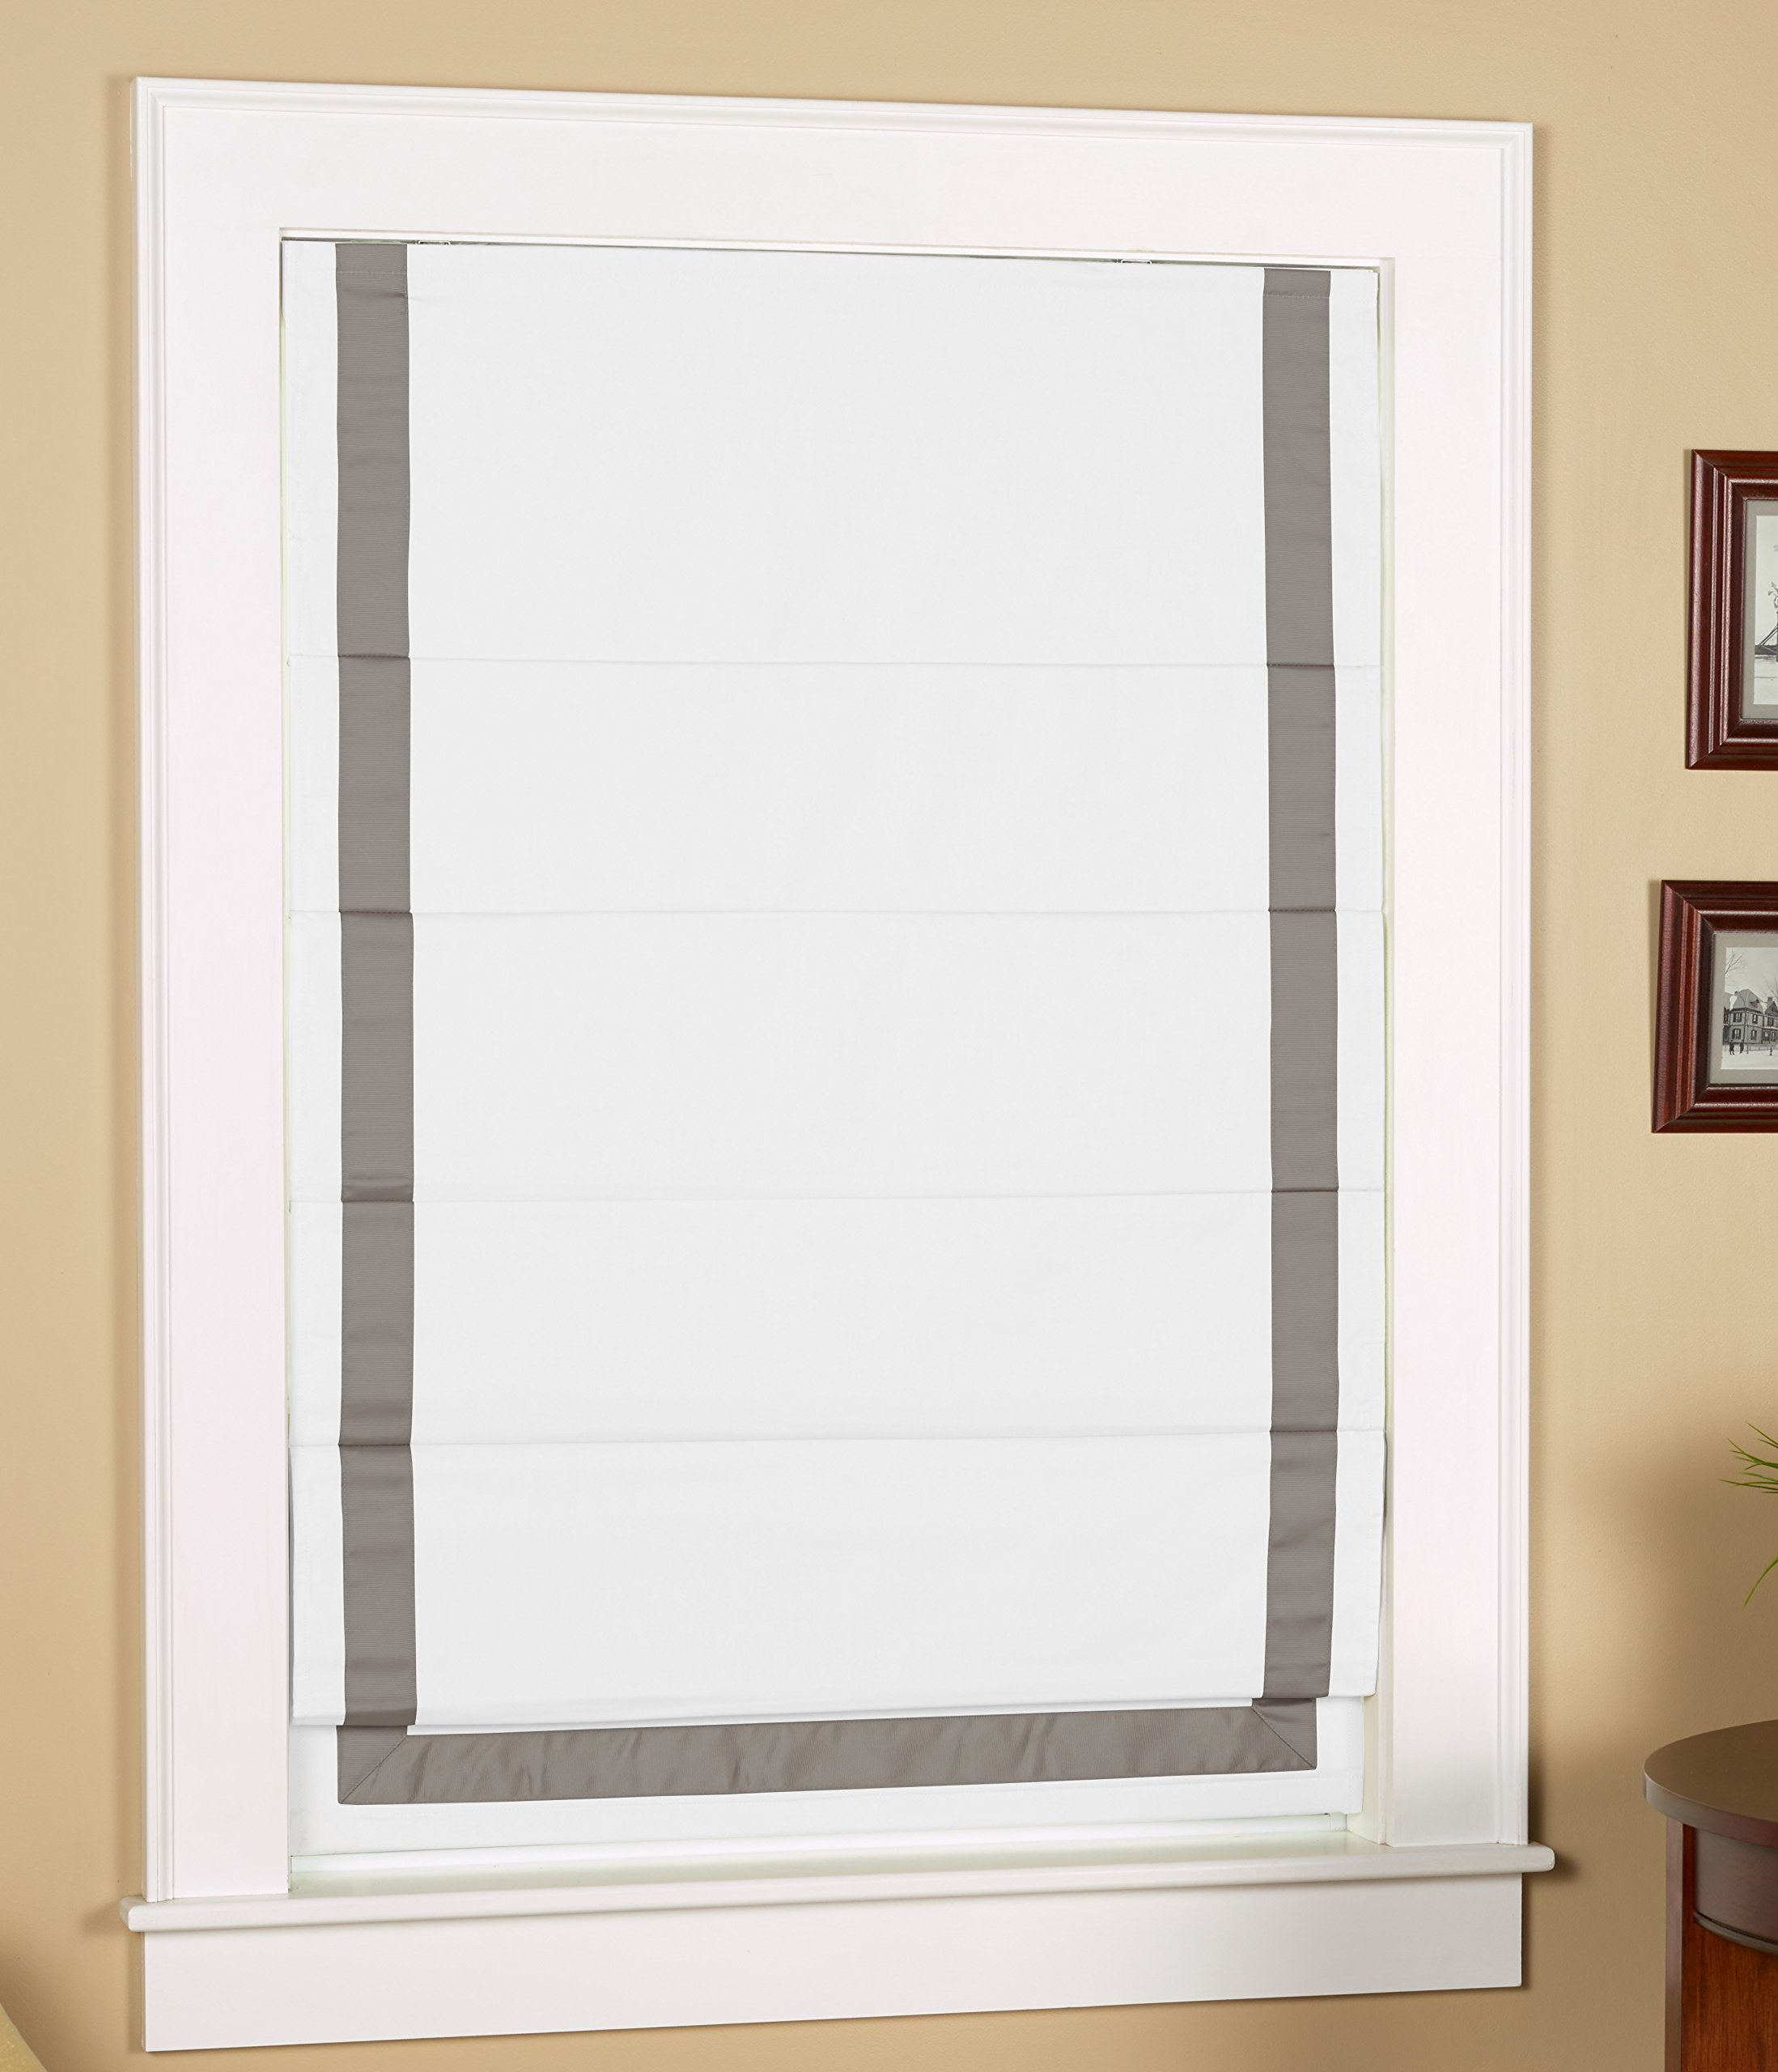 Green Mountain Vista Thermal Blackout Cordless Roman Shade with Ribbon Border - Size 31'' Wide x 63'' Long, White Face Fabric with Grey Border by Green Mountain Vista